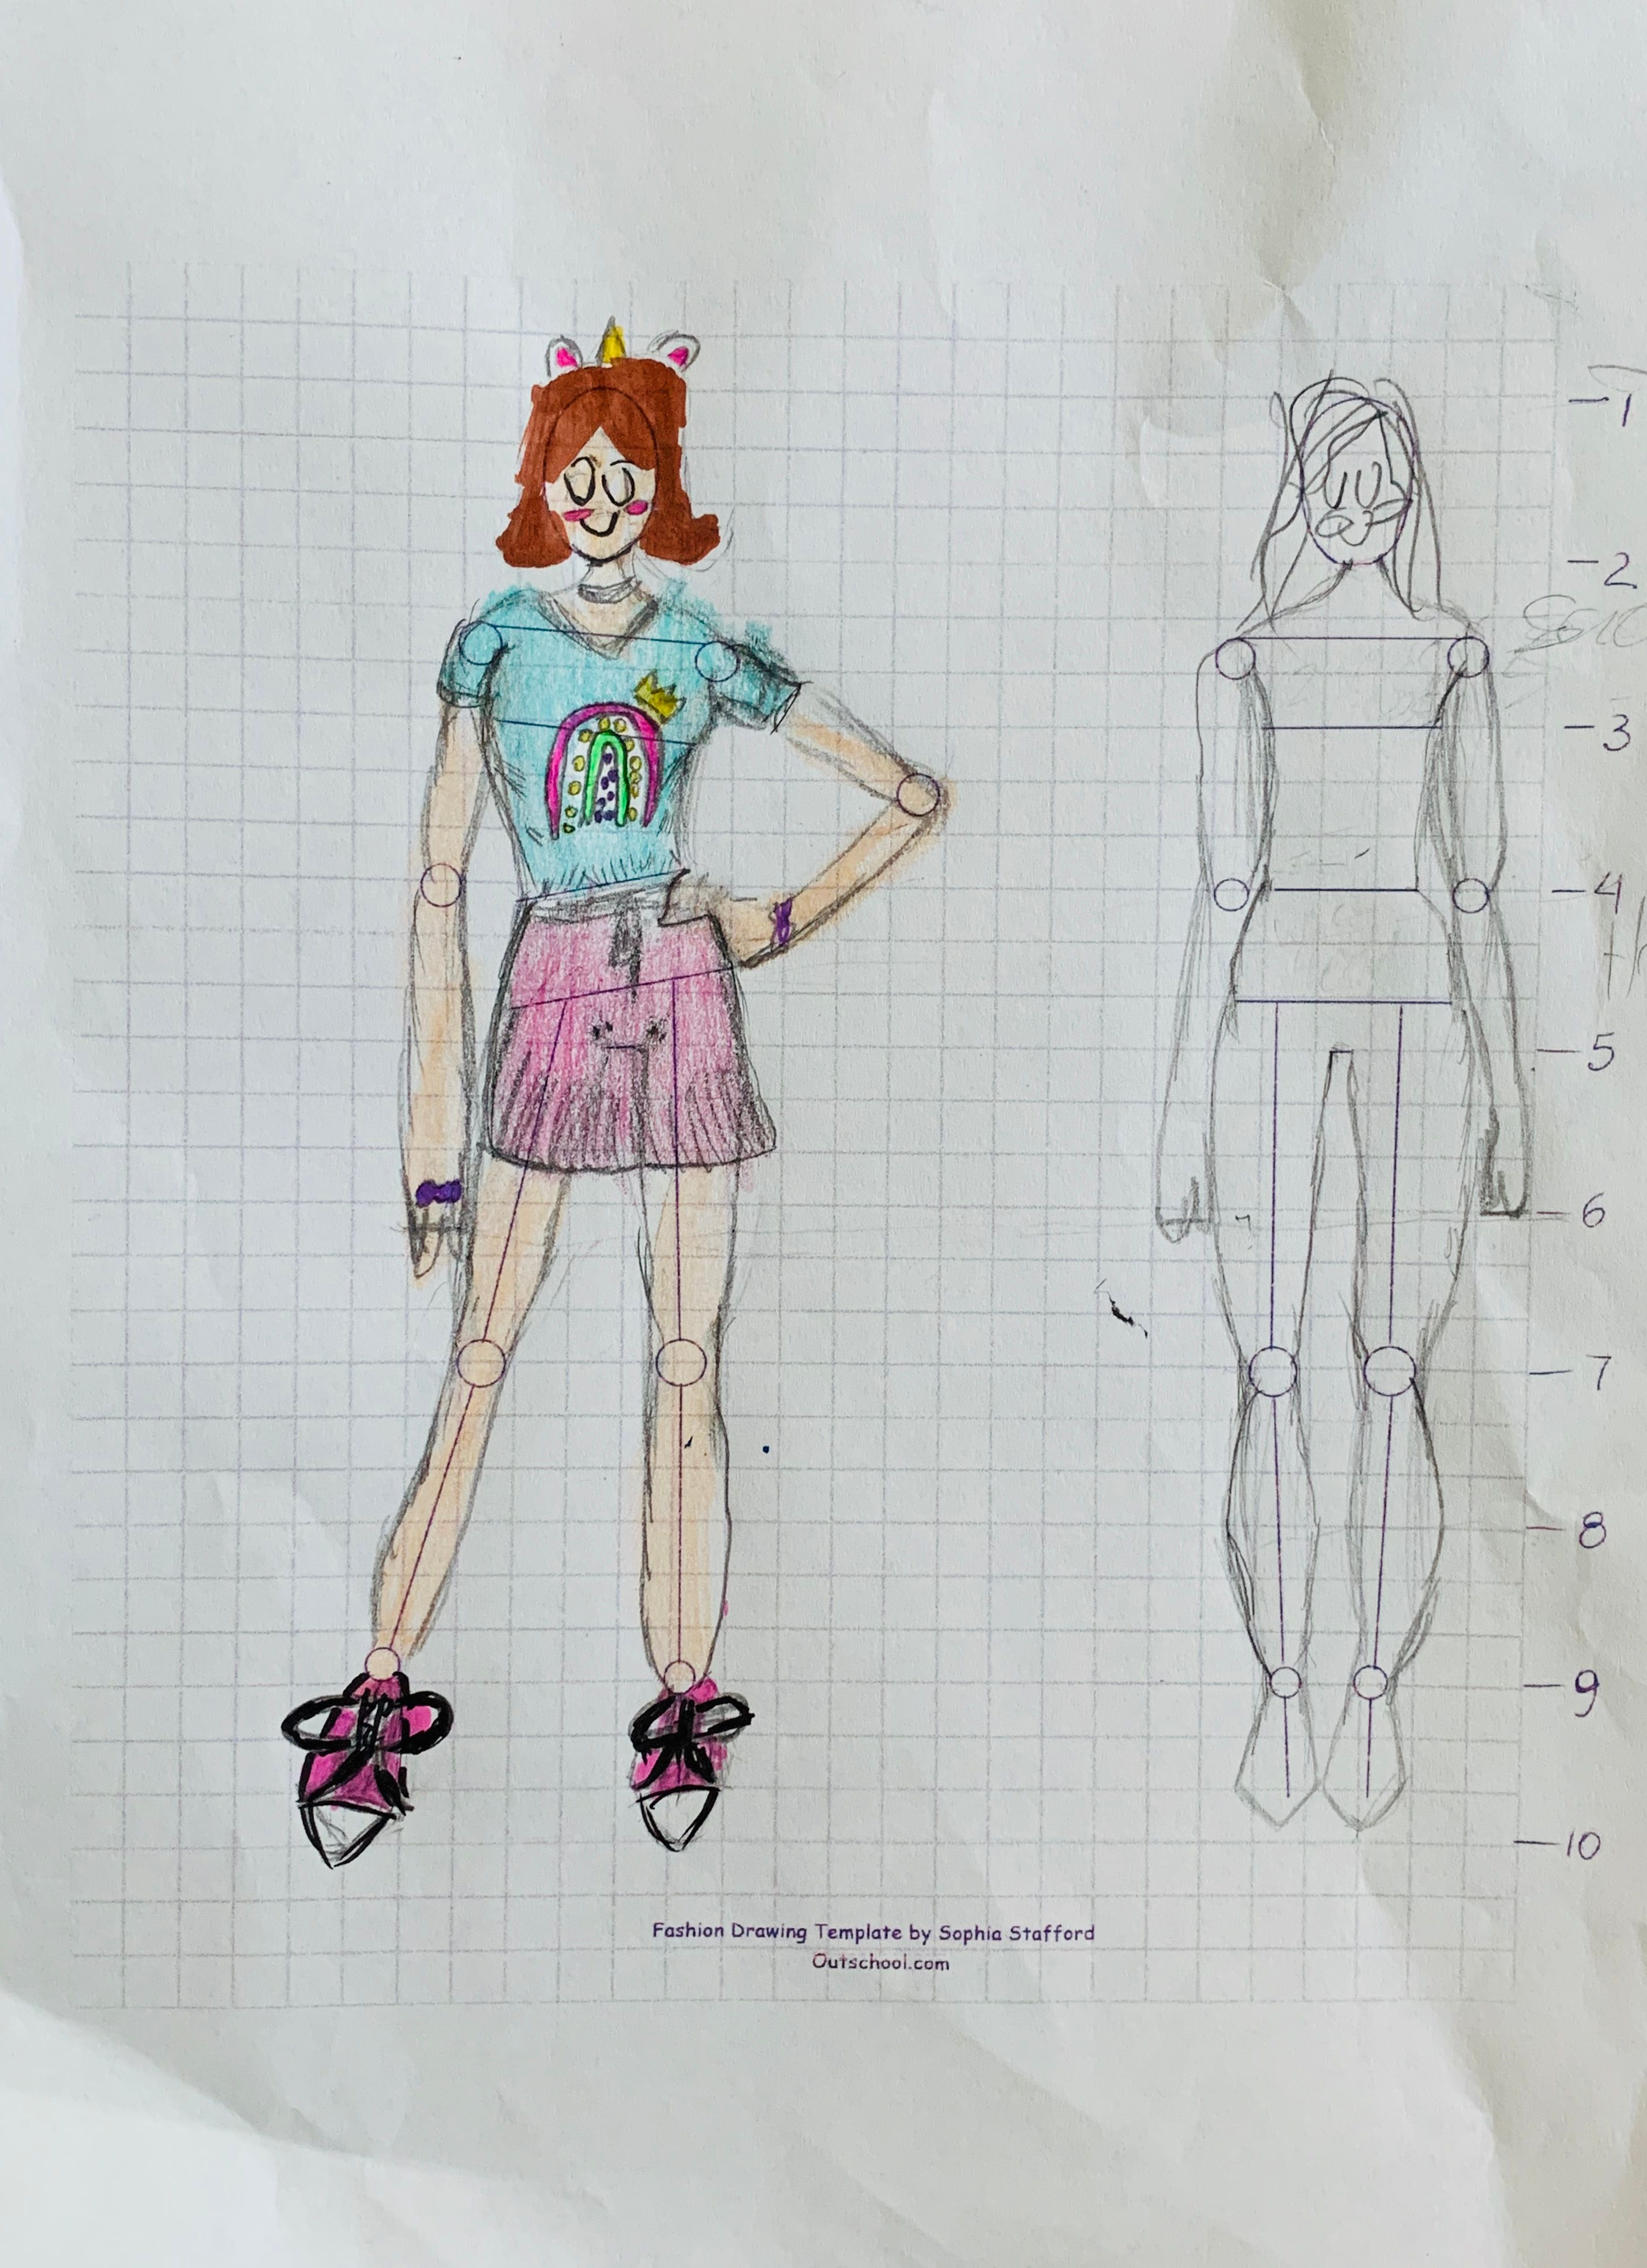 Let S Draw A Fashion Figure Intro To Fashion Drawing And Illustration Small Online Class For Ages 9 12 Outschool